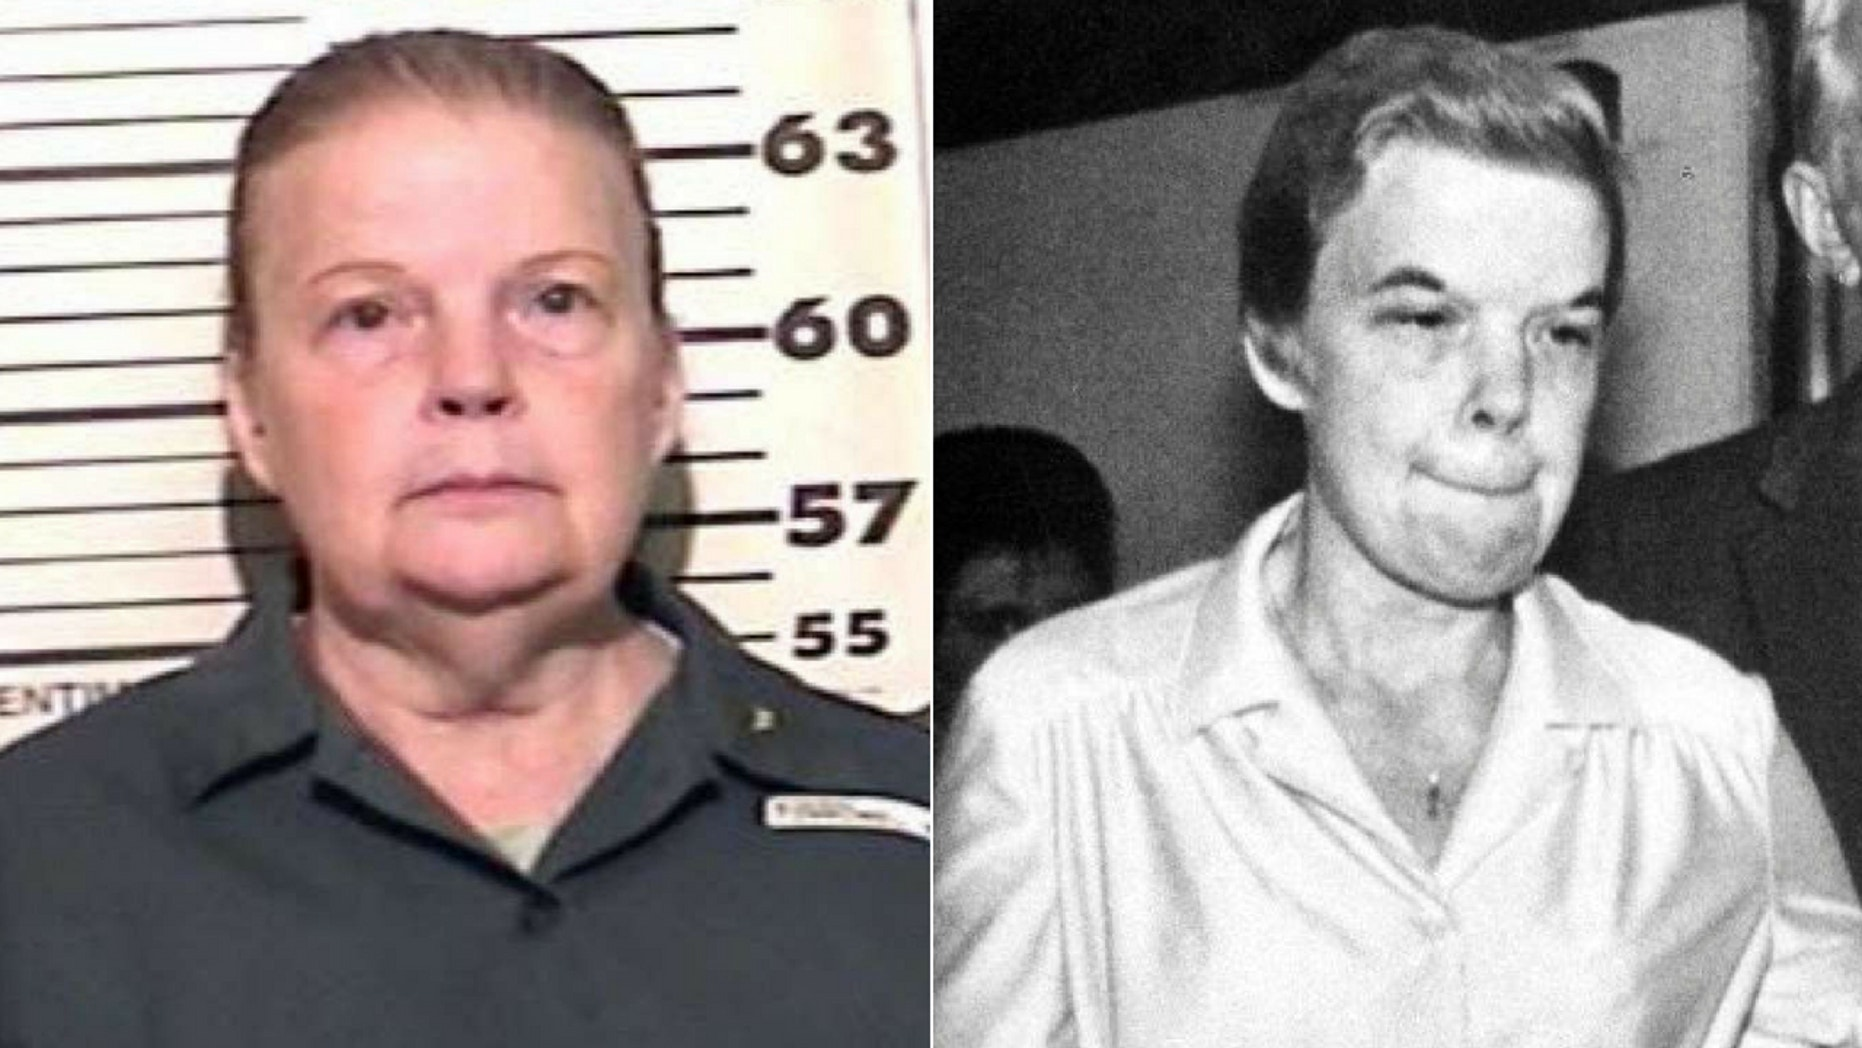 Marybeth Tinning, 75, was granted parole last week at her seventh hearing since becoming eligible in 2007.